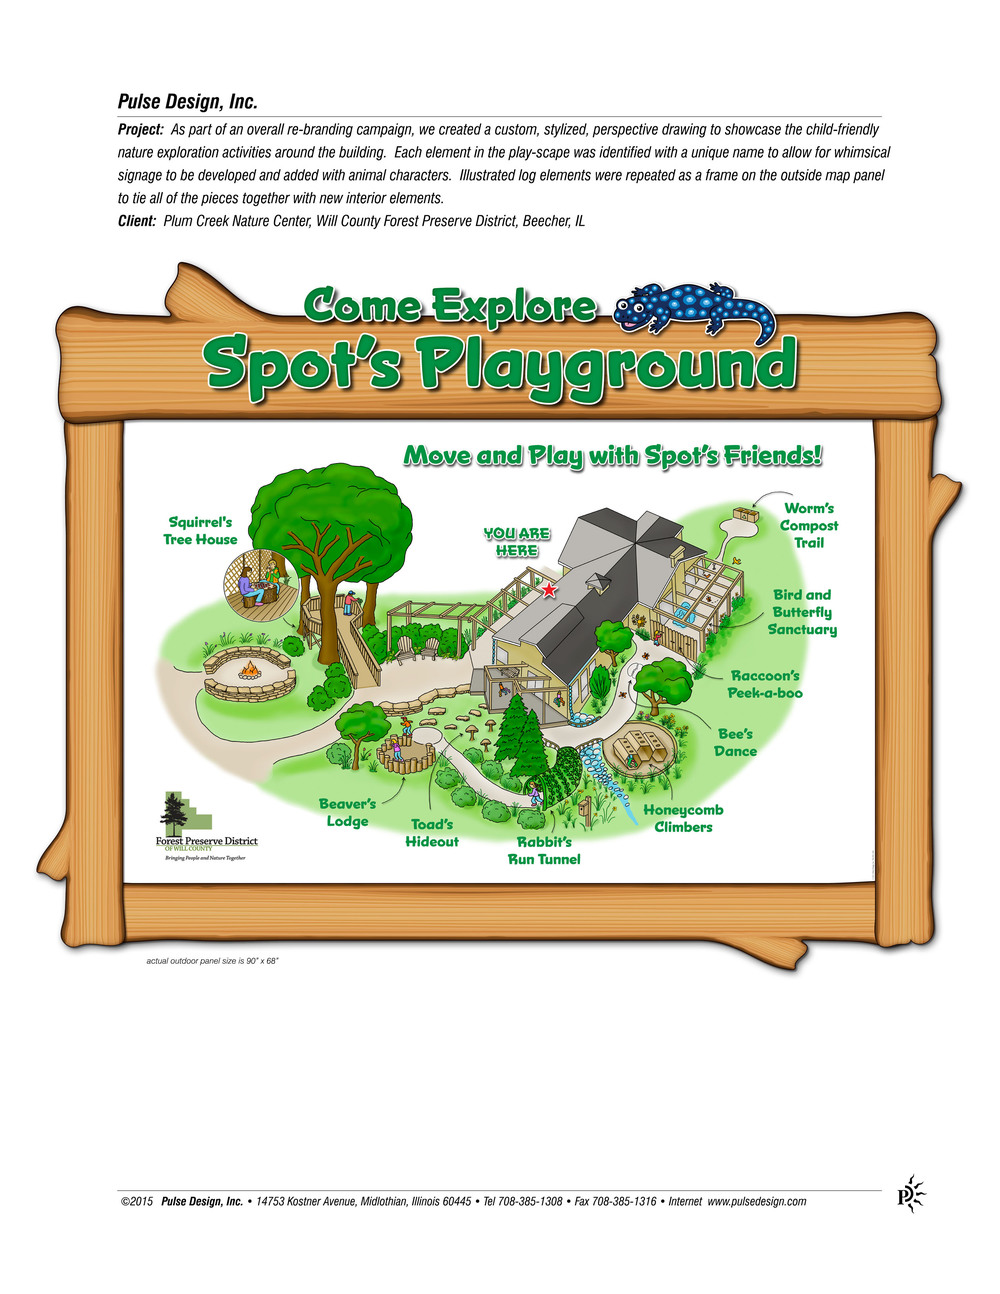 Plum-Creek-Spots-Playground-Map-In-Frame-Pulse-Design-Inc.jpg